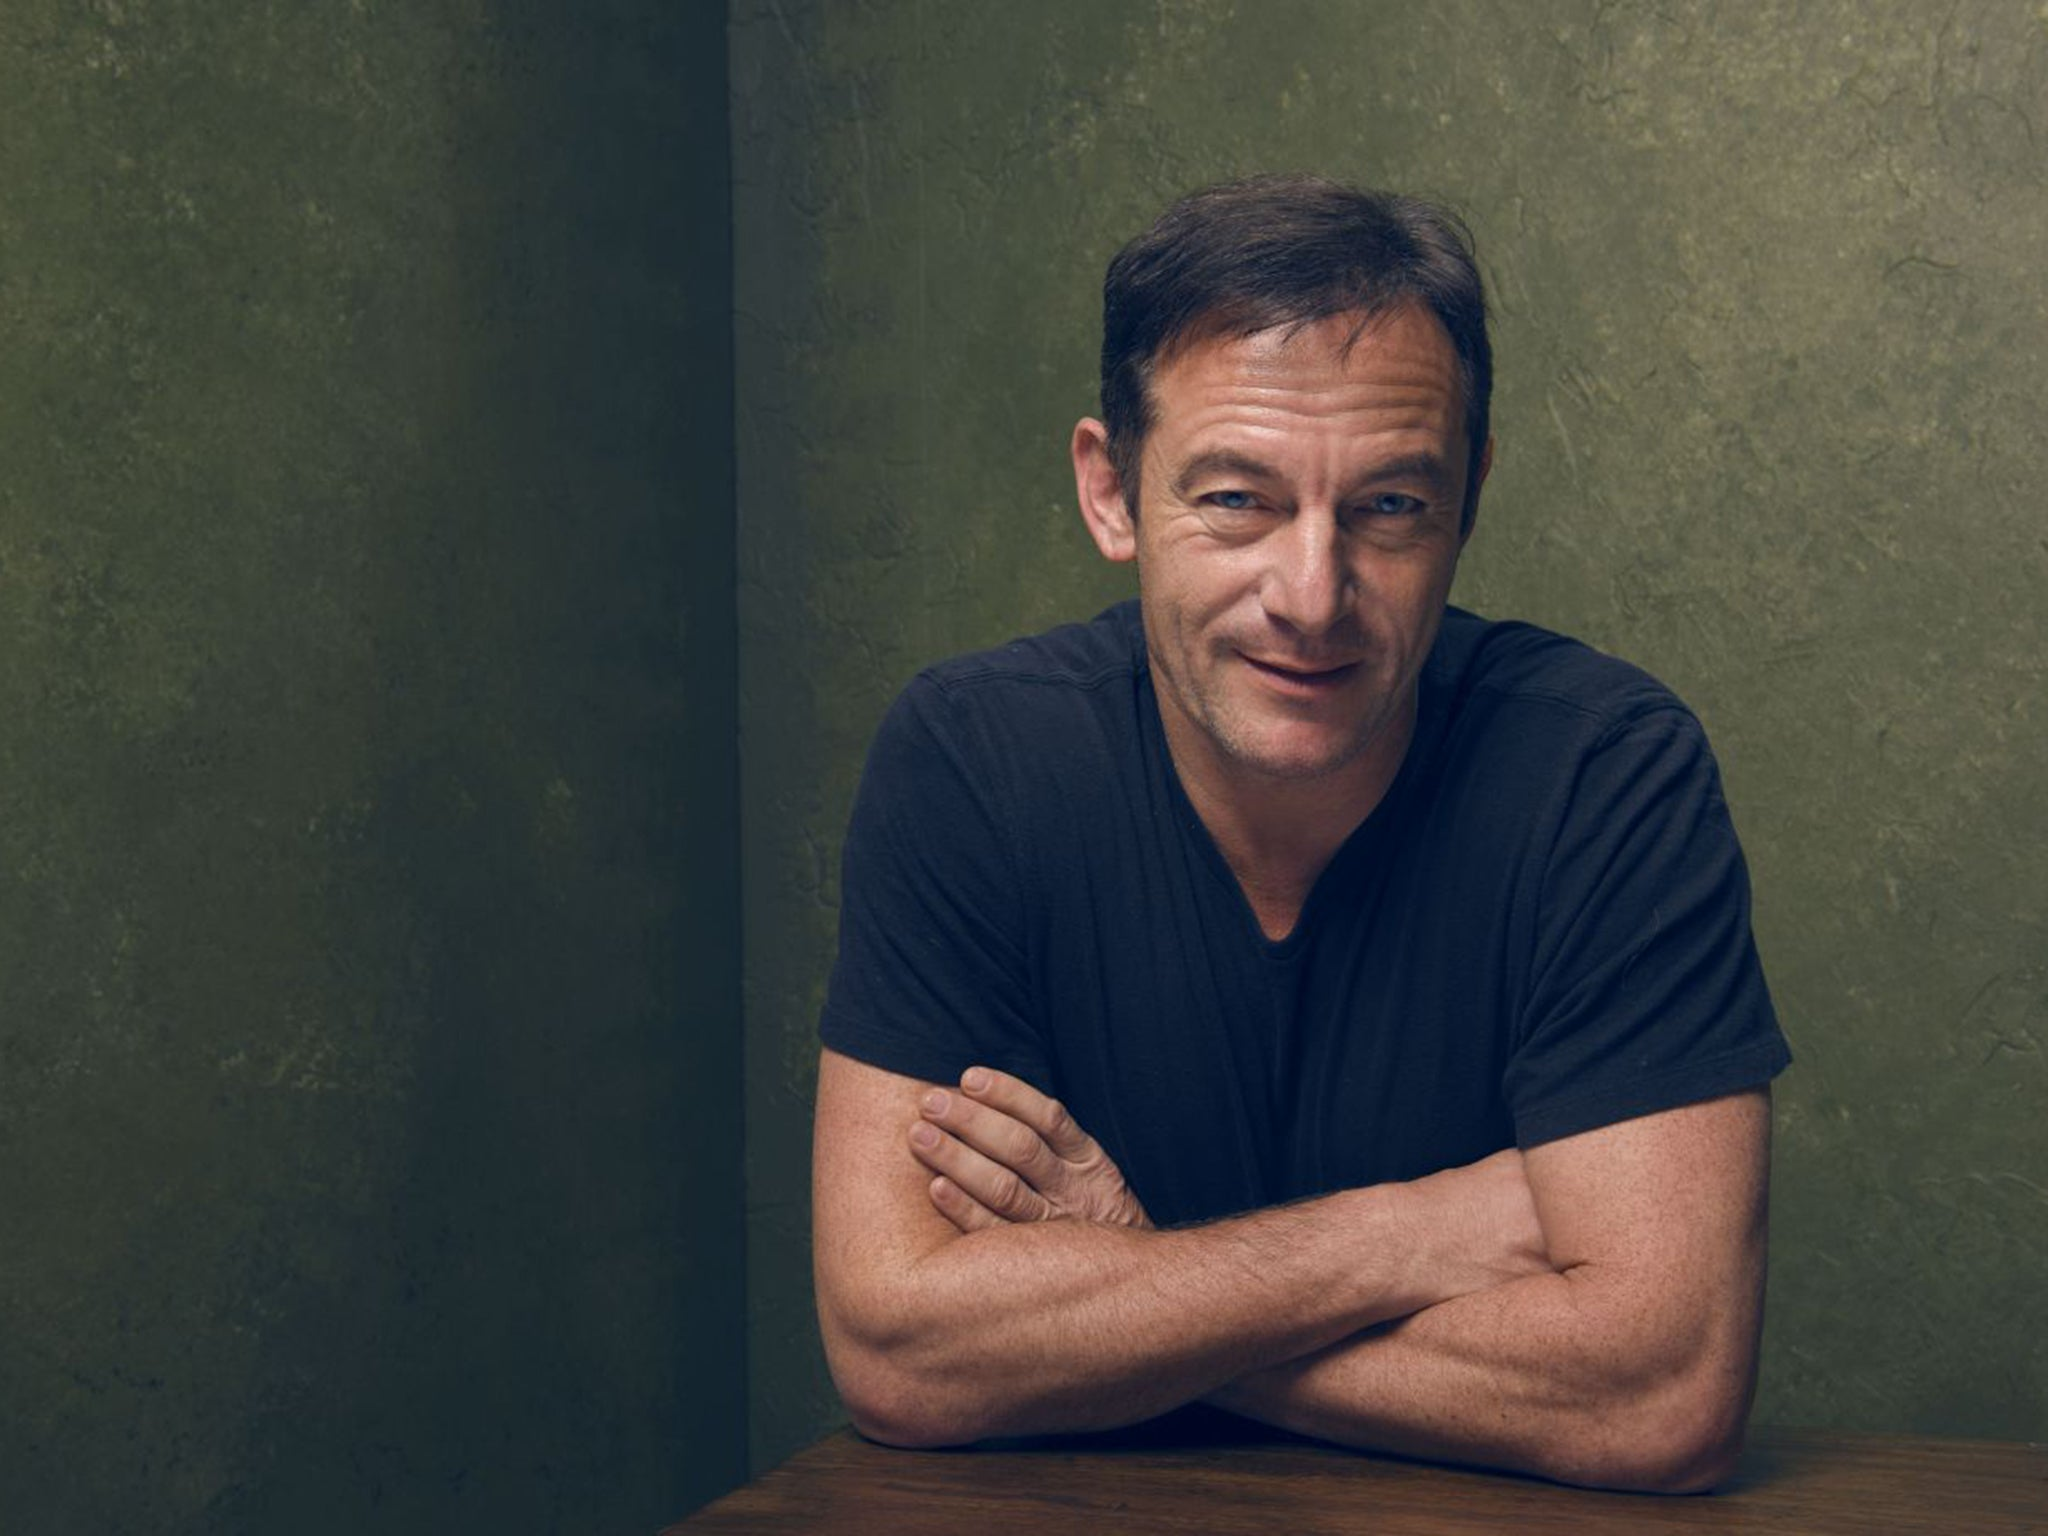 Harry Potter Star Jason Isaacs Joins extraordinary